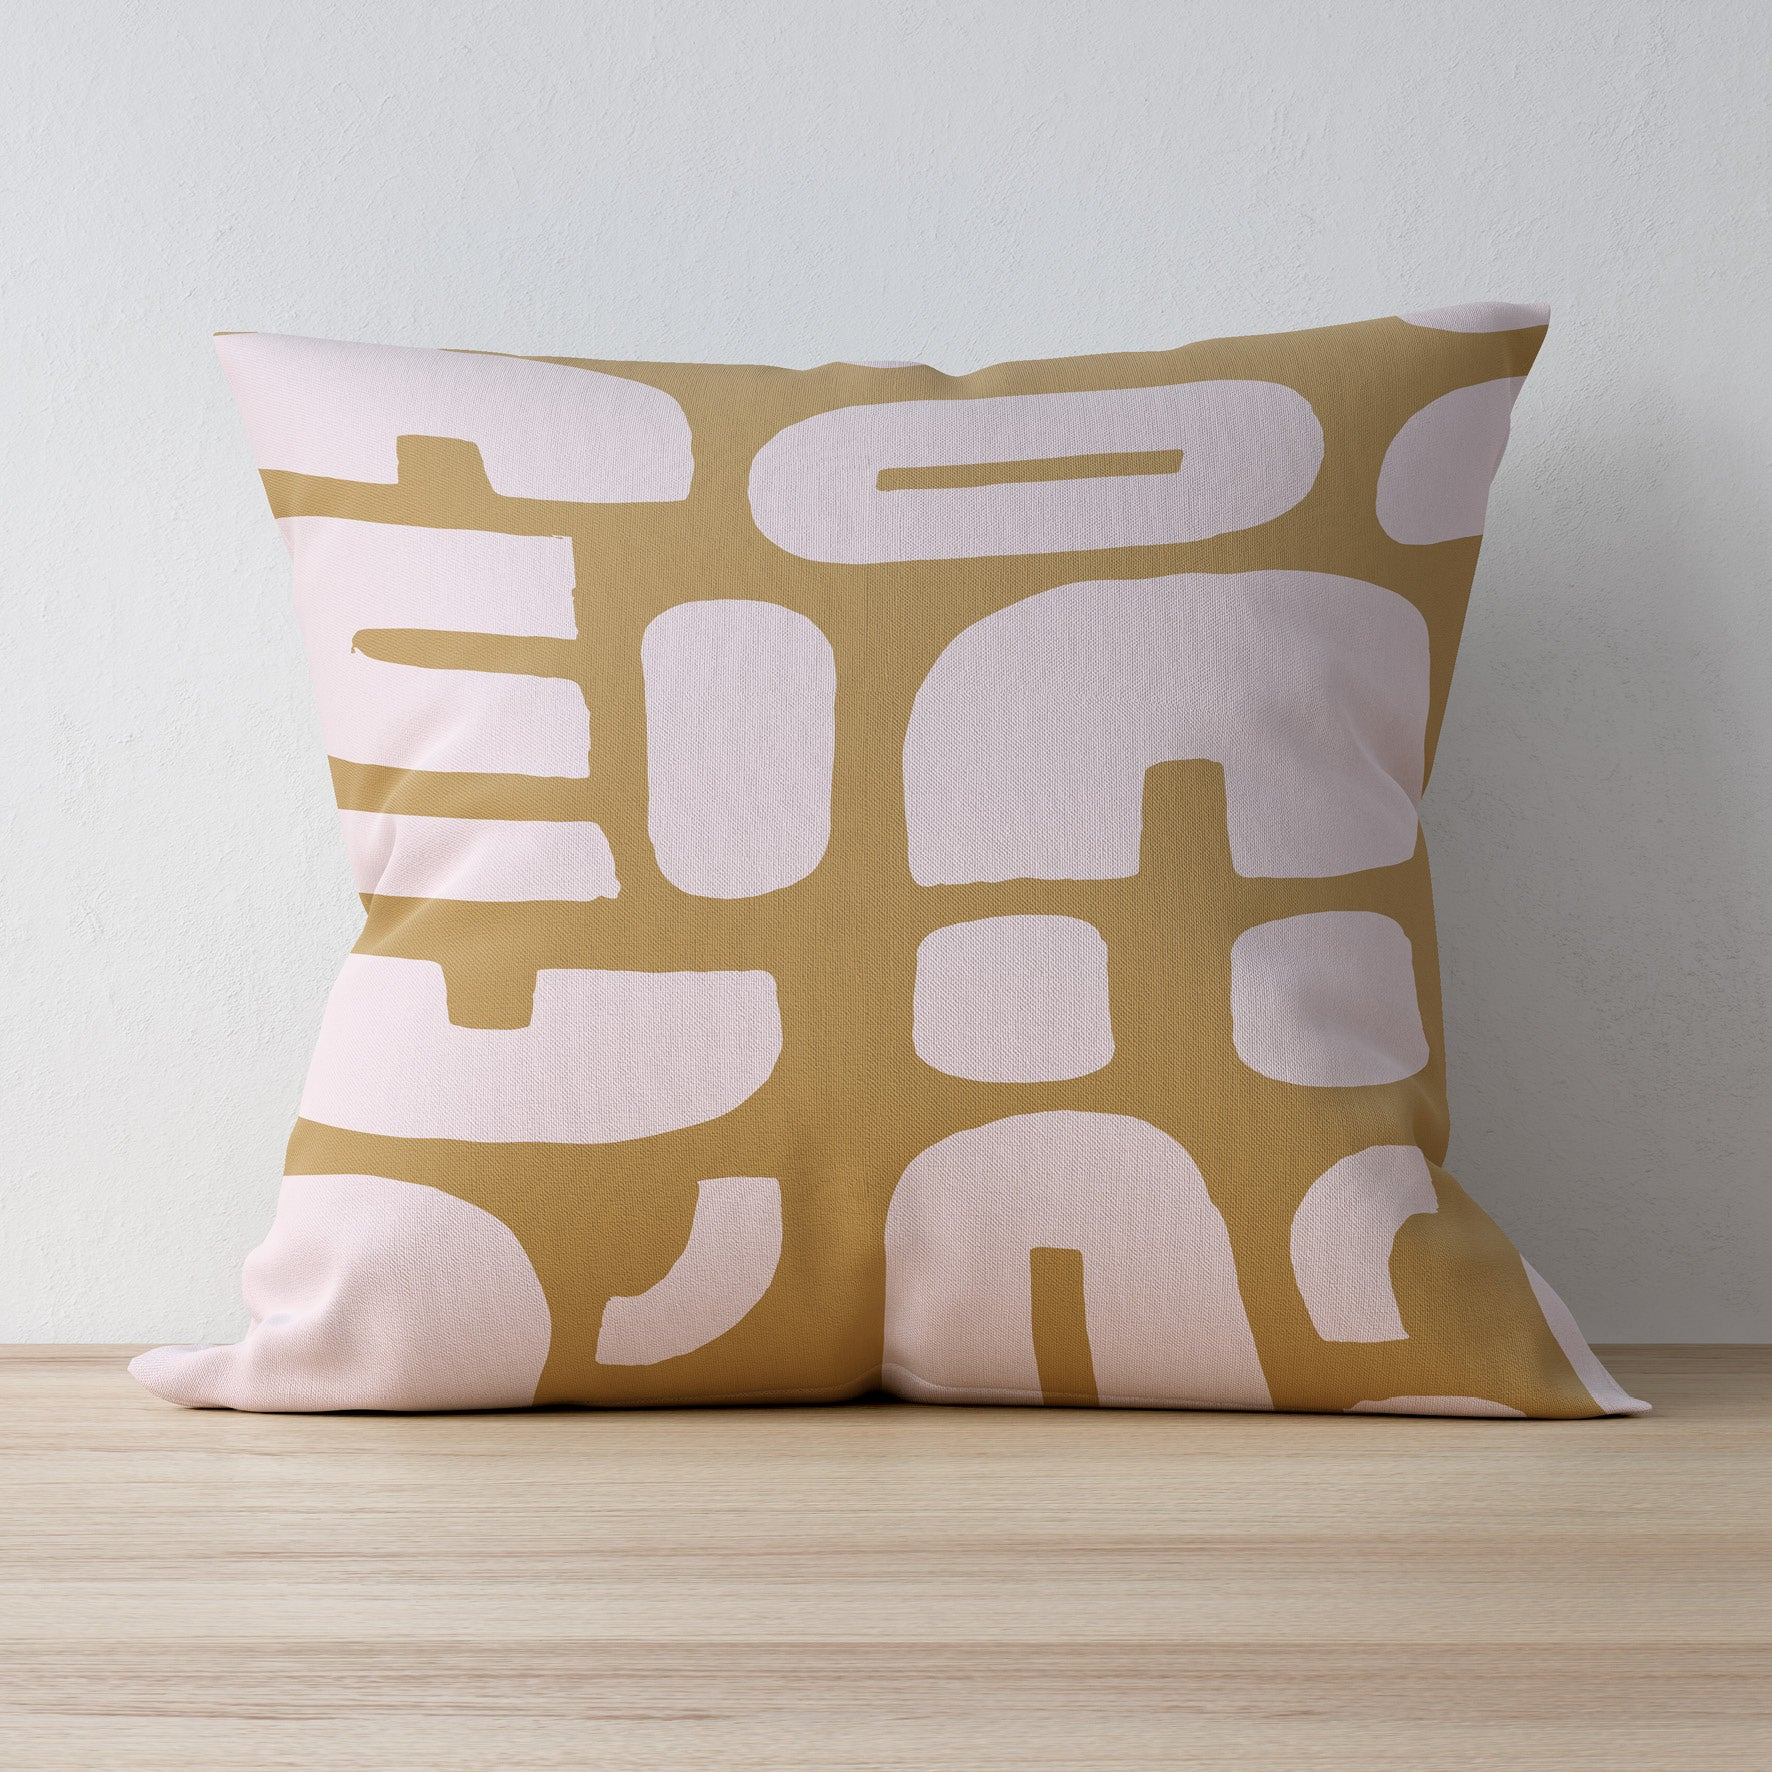 Becks Harrop - Organic Manic Pillow Case